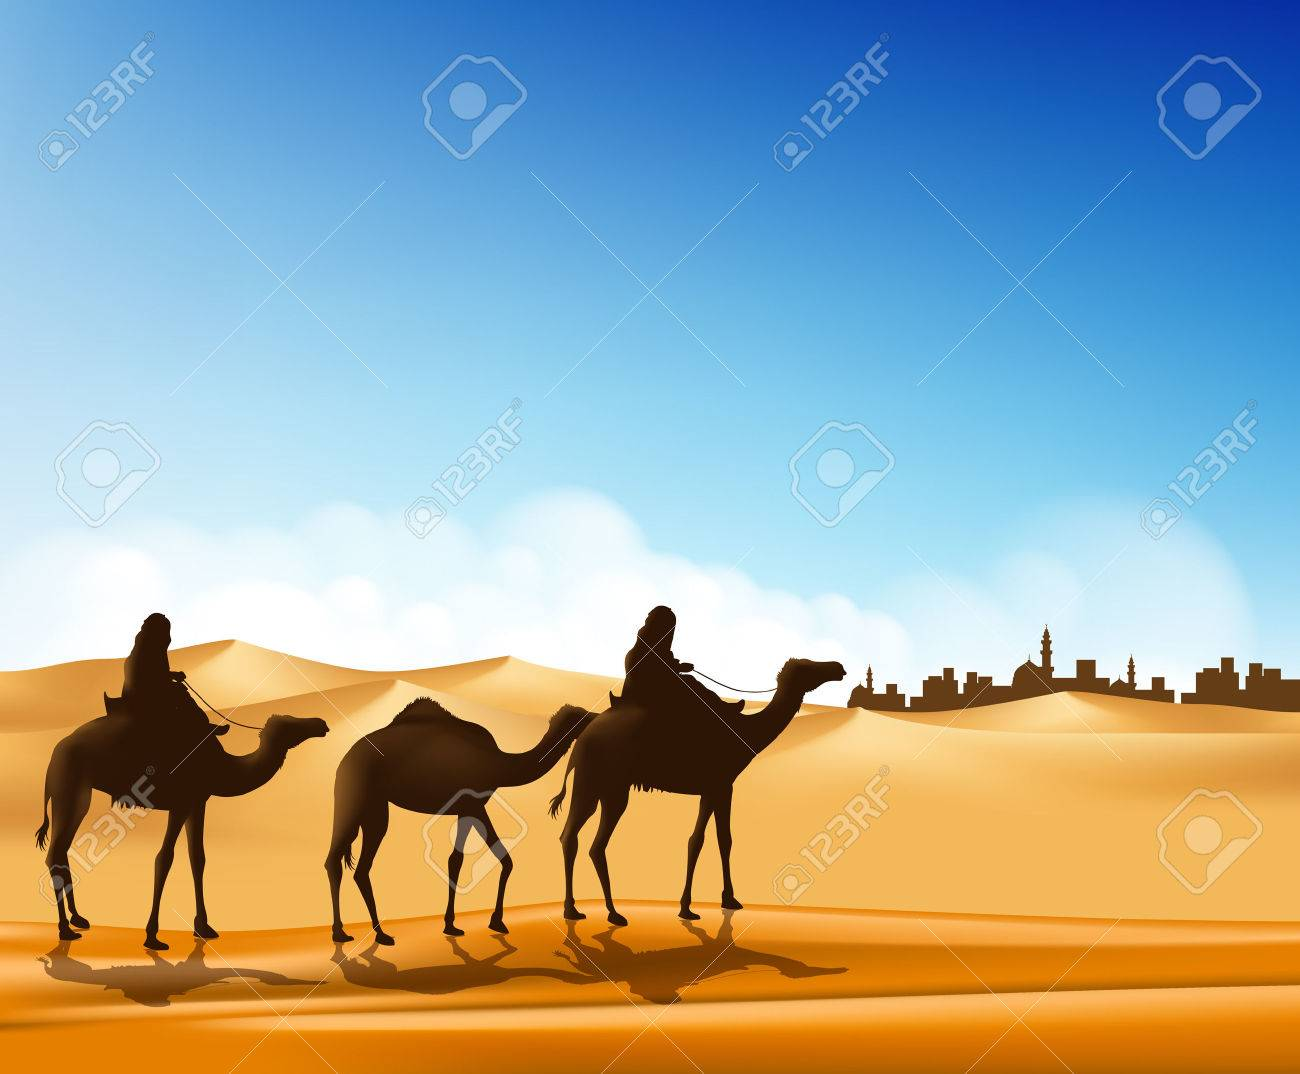 Group of Arab People with Camels Caravan Riding in Realistic Wide Desert Sands in Middle East Going to a City. Editable Vector Illustration - 38617200